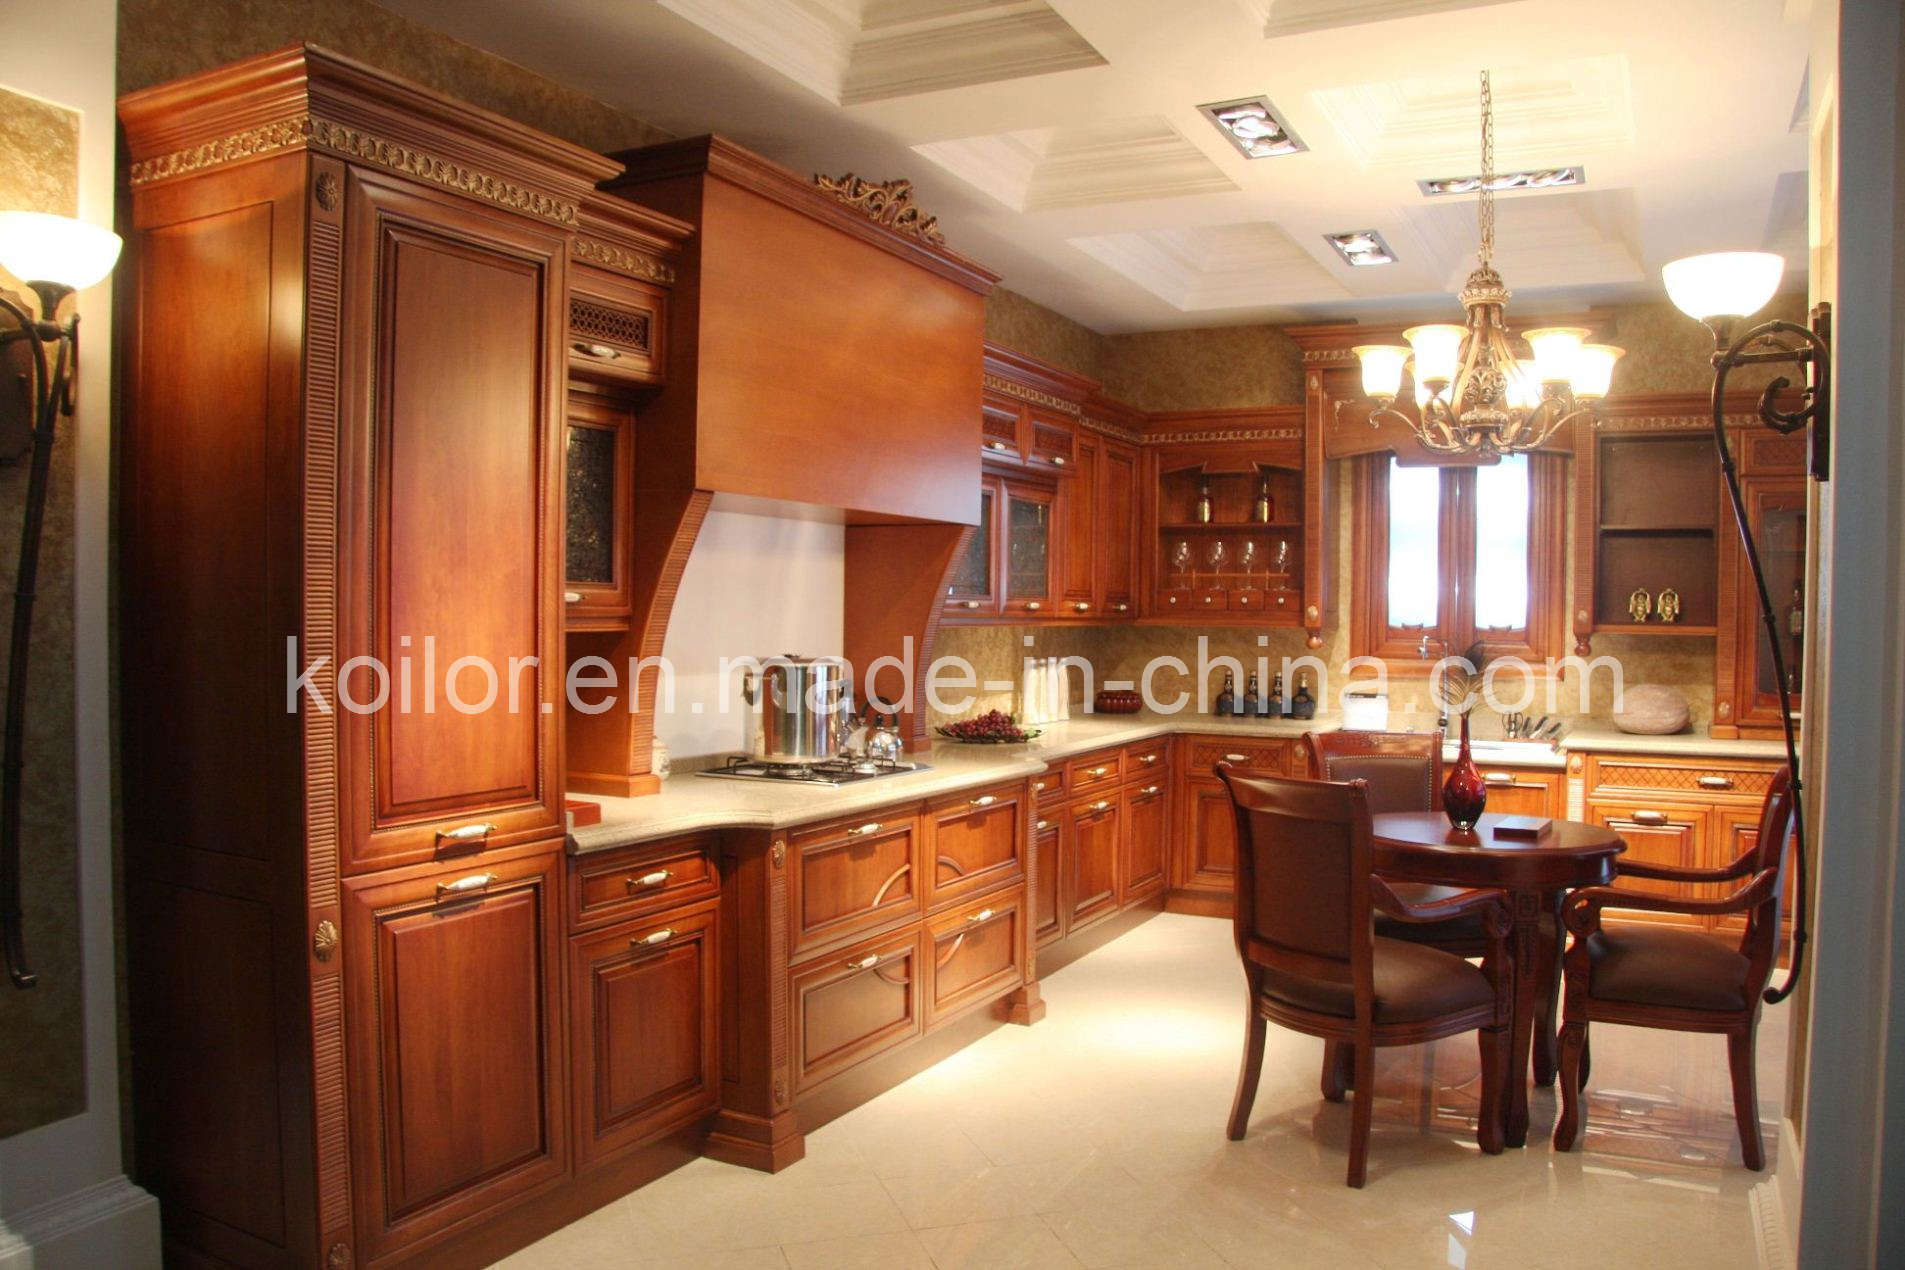 china kitchen cabinet solid wood kitchen cabinets royal china kitchen kitchen cabinet. Black Bedroom Furniture Sets. Home Design Ideas